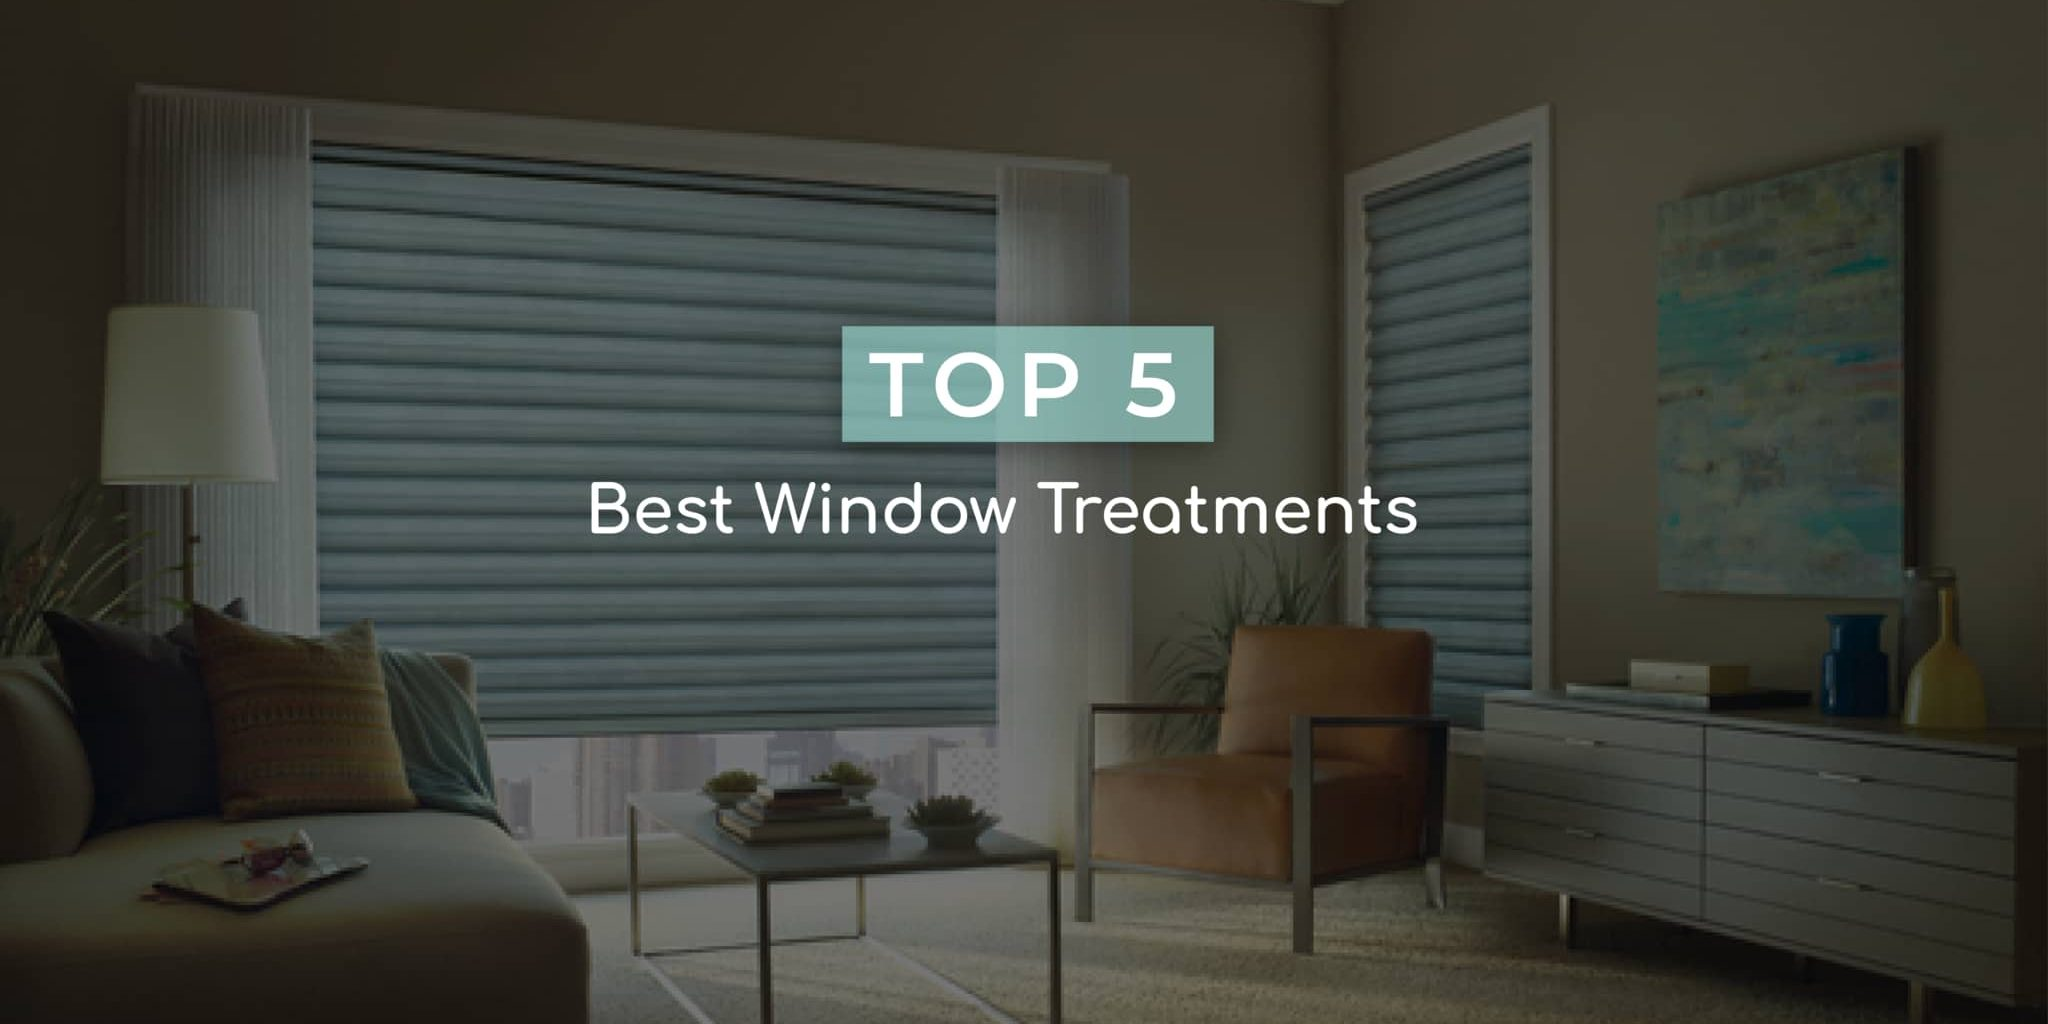 top 5 window treatments - Starlite blog